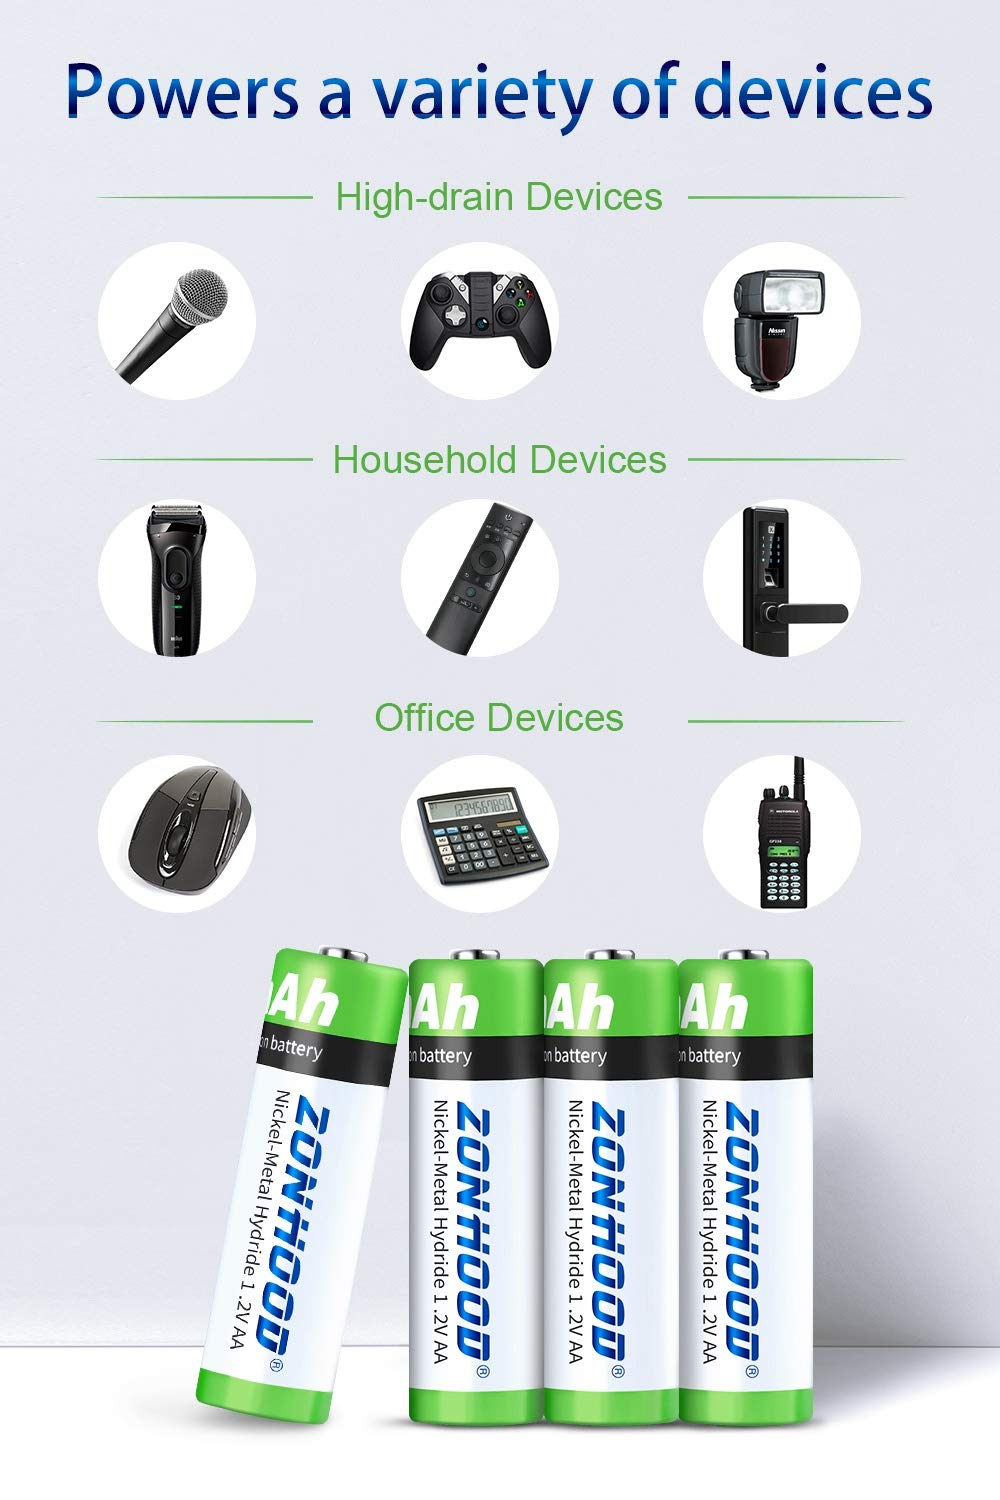 AA Batteries 2800mAh High-Capacity AA Batteries Rechargeable AABatteries 1.2V Ni-MH Low Self Discharge 8pack AA Rechargeable Batteries